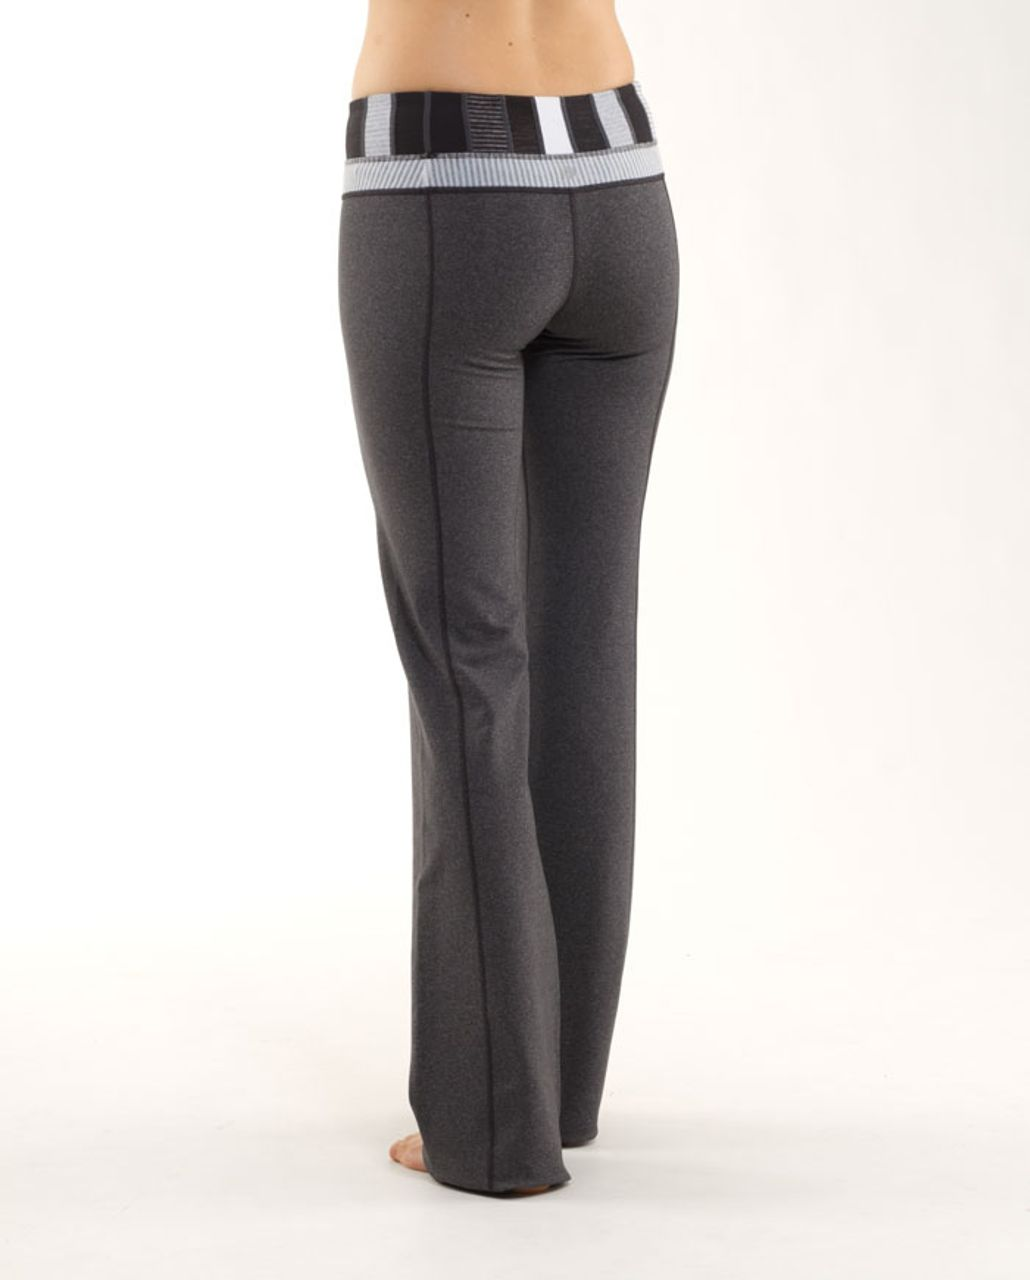 Lululemon Groove Pant (Regular) - Heathered Deep Coal /  Quilting Winter 4 /  White Heathered Blurred Grey Mini Check